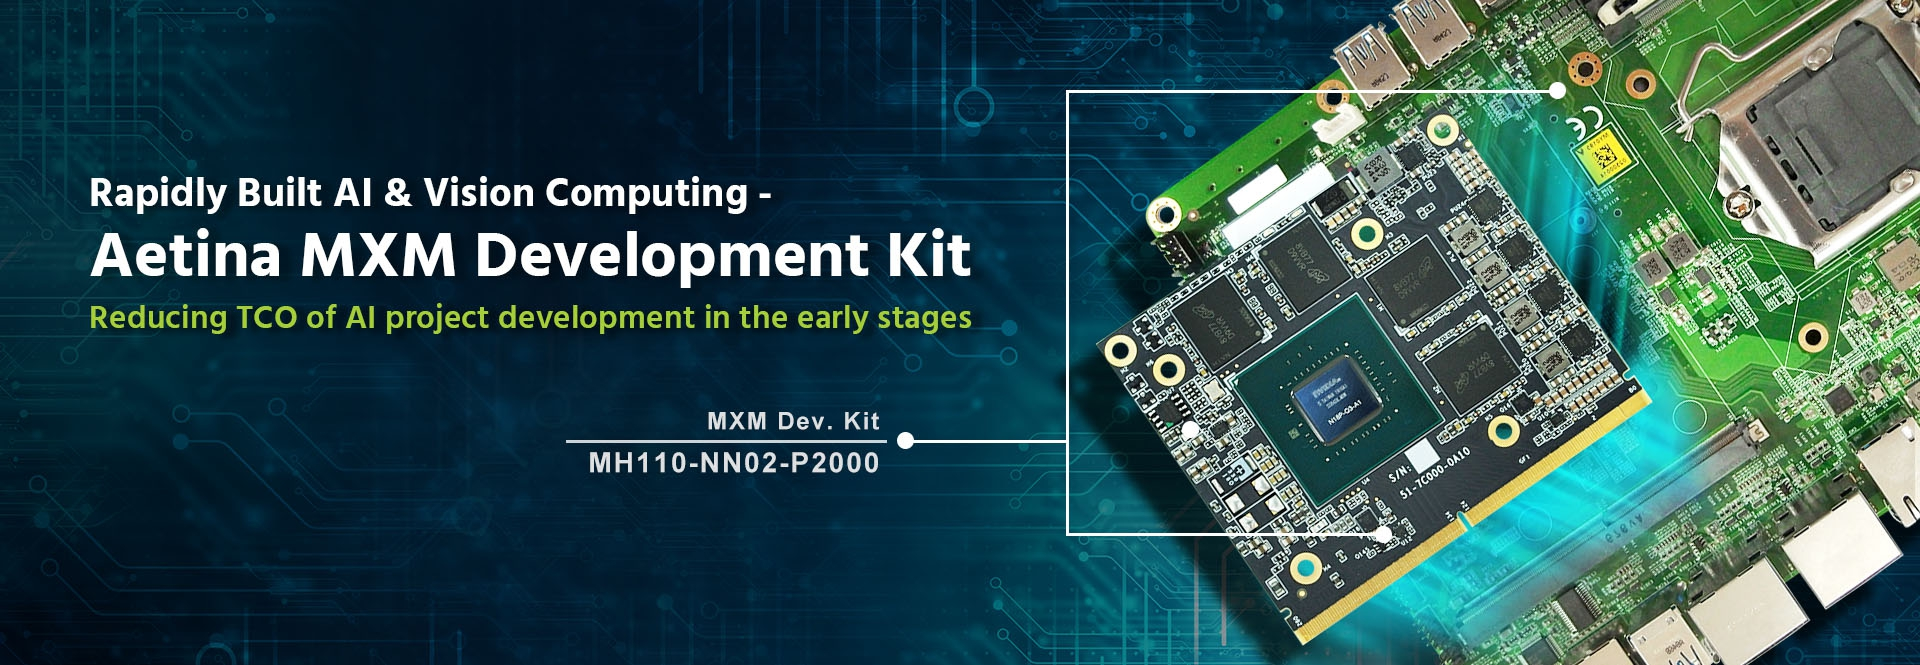 Rapidly Built AI & Vision Computing – Aetina MXM Dev. Kit